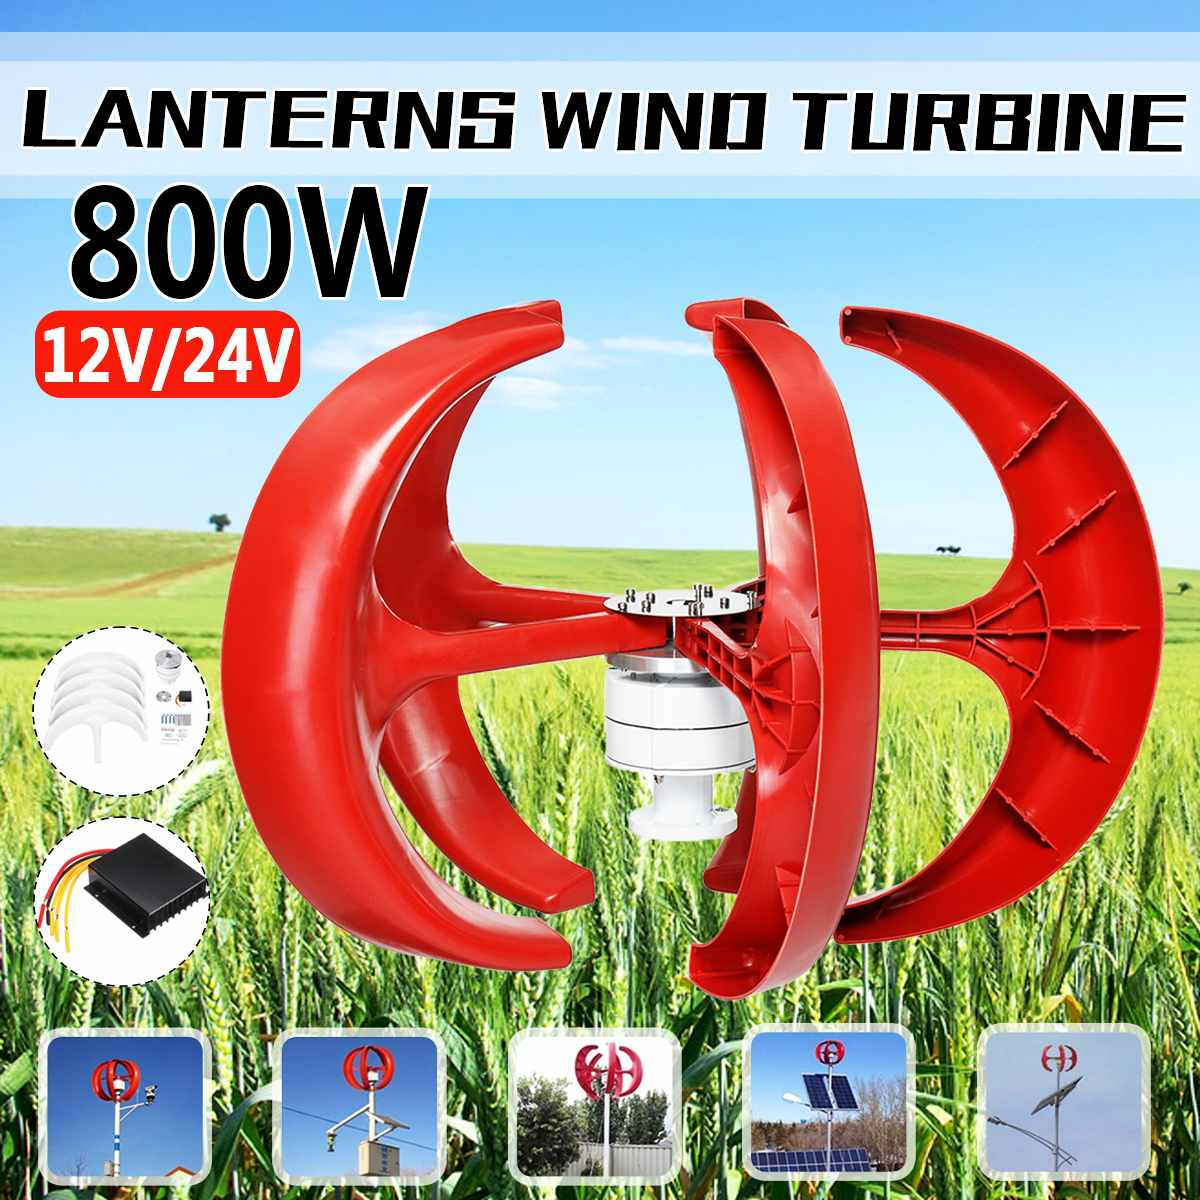 800W Vertical Axis Wind Turbines Generator Lantern 5 Blades 12V 24V Motor Kit Electromagnetic For Home Hybrid Streetlight Use800W Vertical Axis Wind Turbines Generator Lantern 5 Blades 12V 24V Motor Kit Electromagnetic For Home Hybrid Streetlight Use